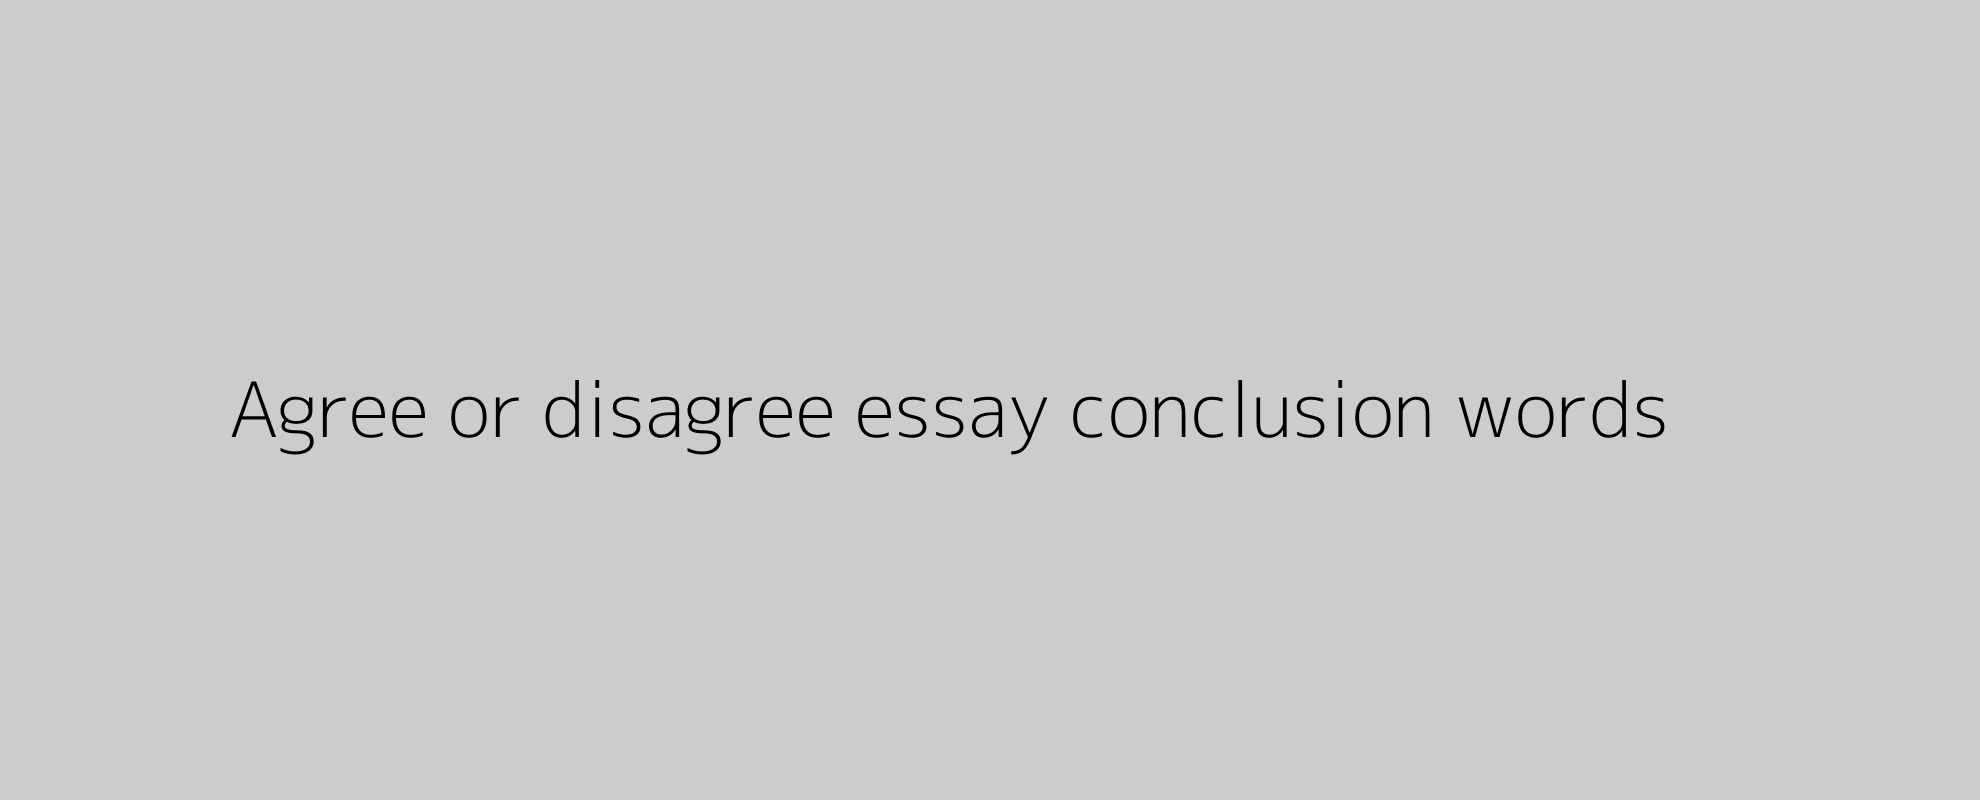 Agree or disagree essay conclusion words